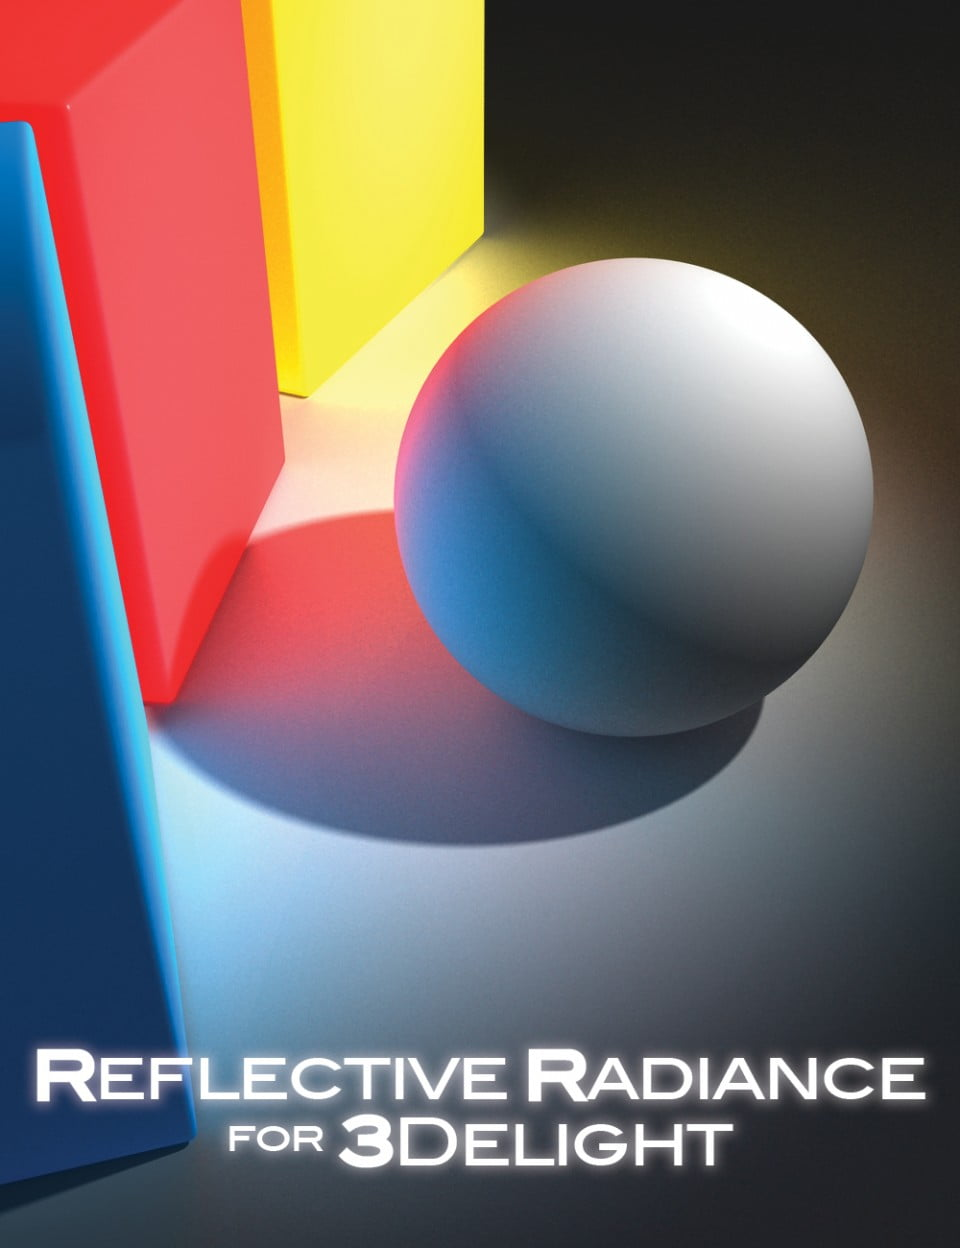 Reflective Radiance for 3Delight